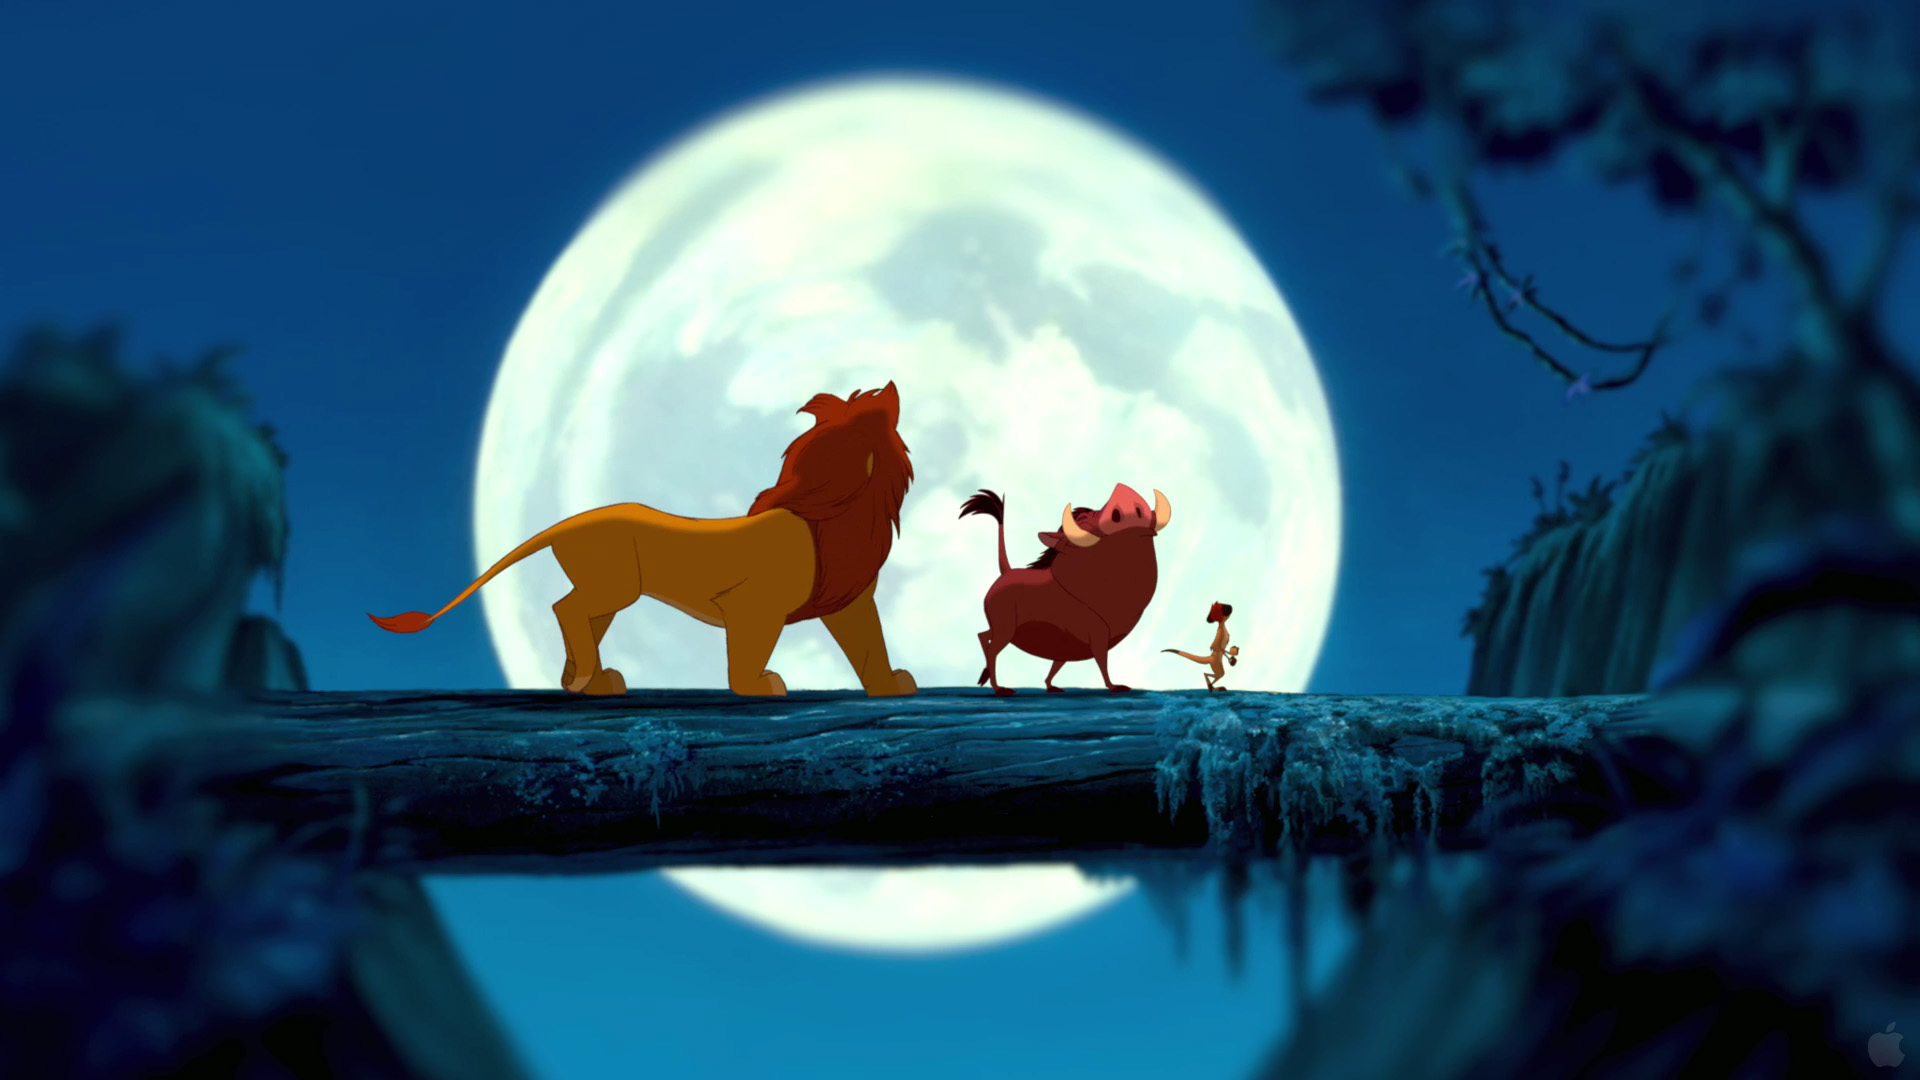 the lion king wallpapers desktop wallpapers